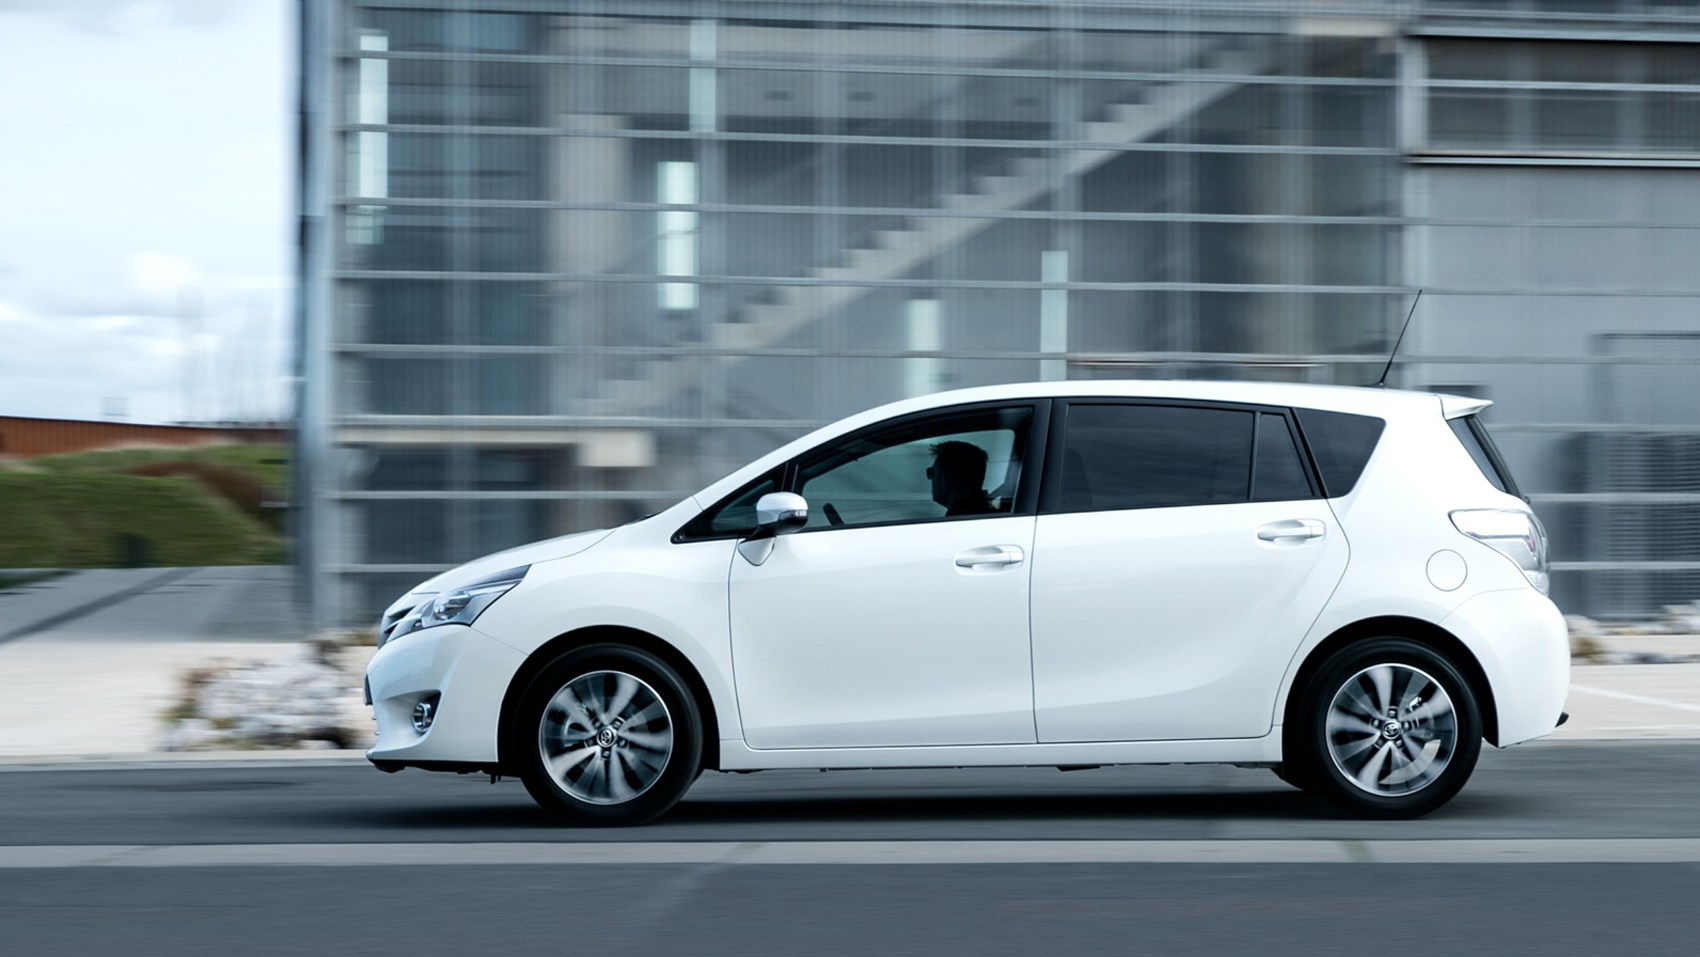 Toyota Verso side panning